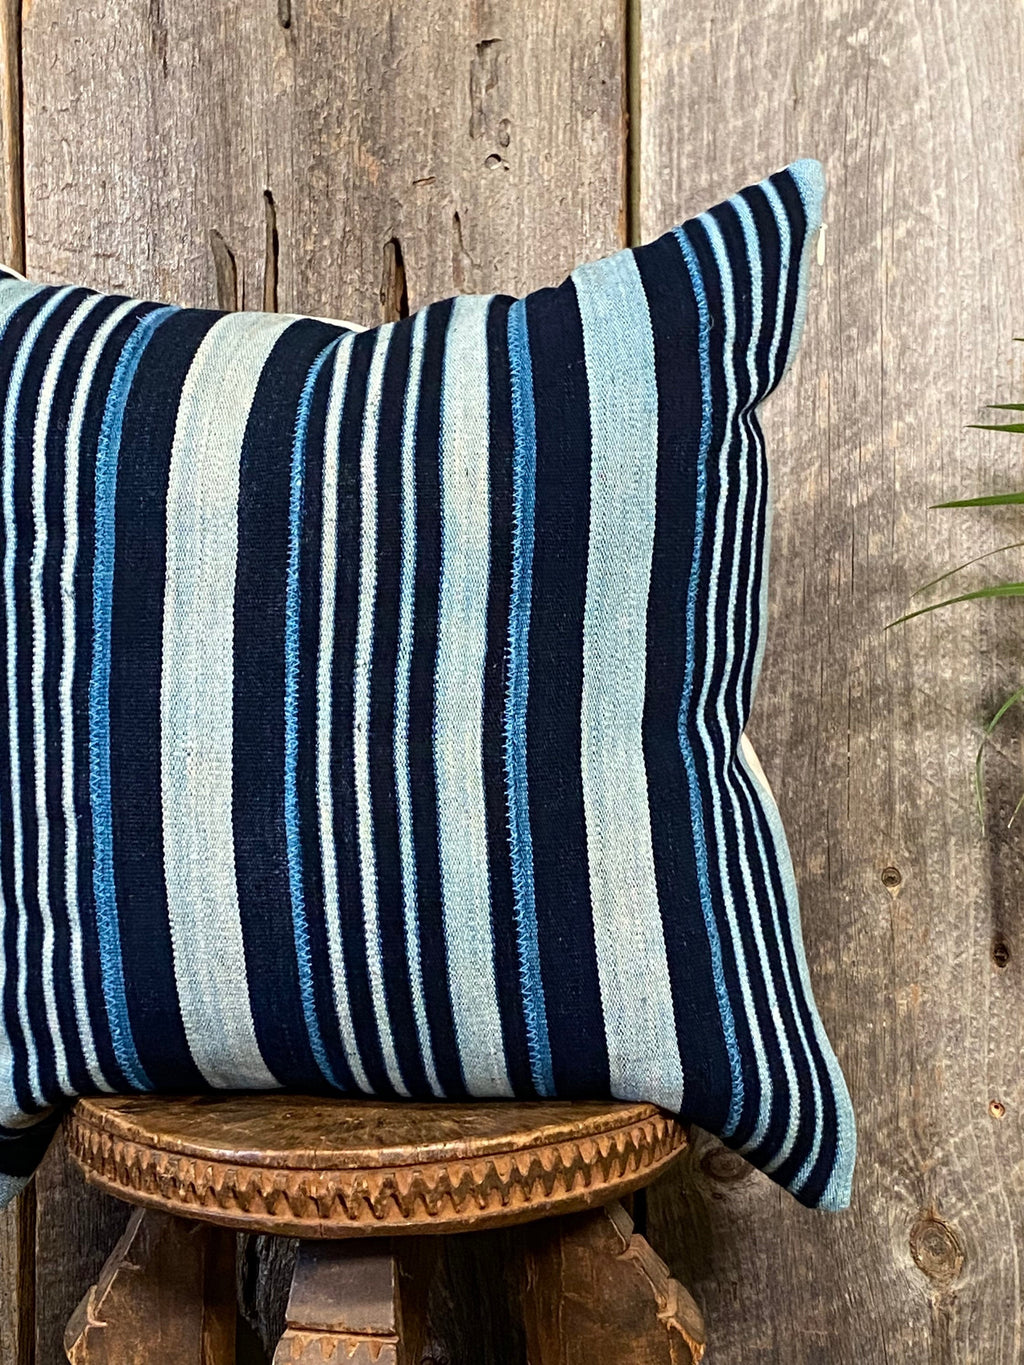 Vintage Indigo Pillow, Indigo Pillow Cover, Indigo Home Decor